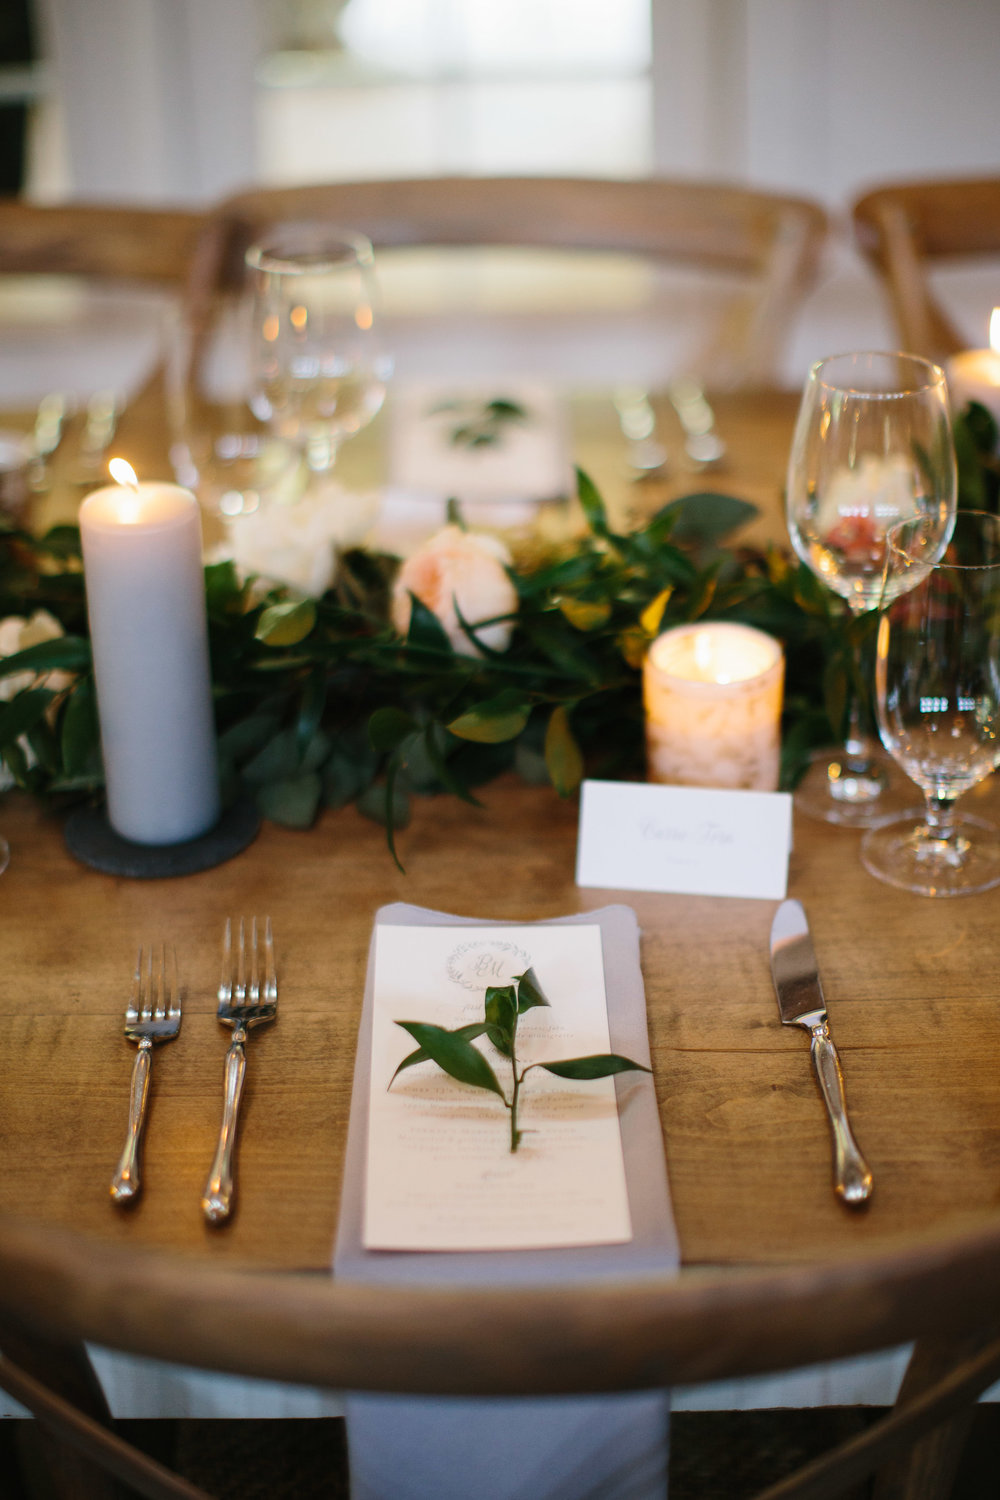 TableSetting_1.jpg